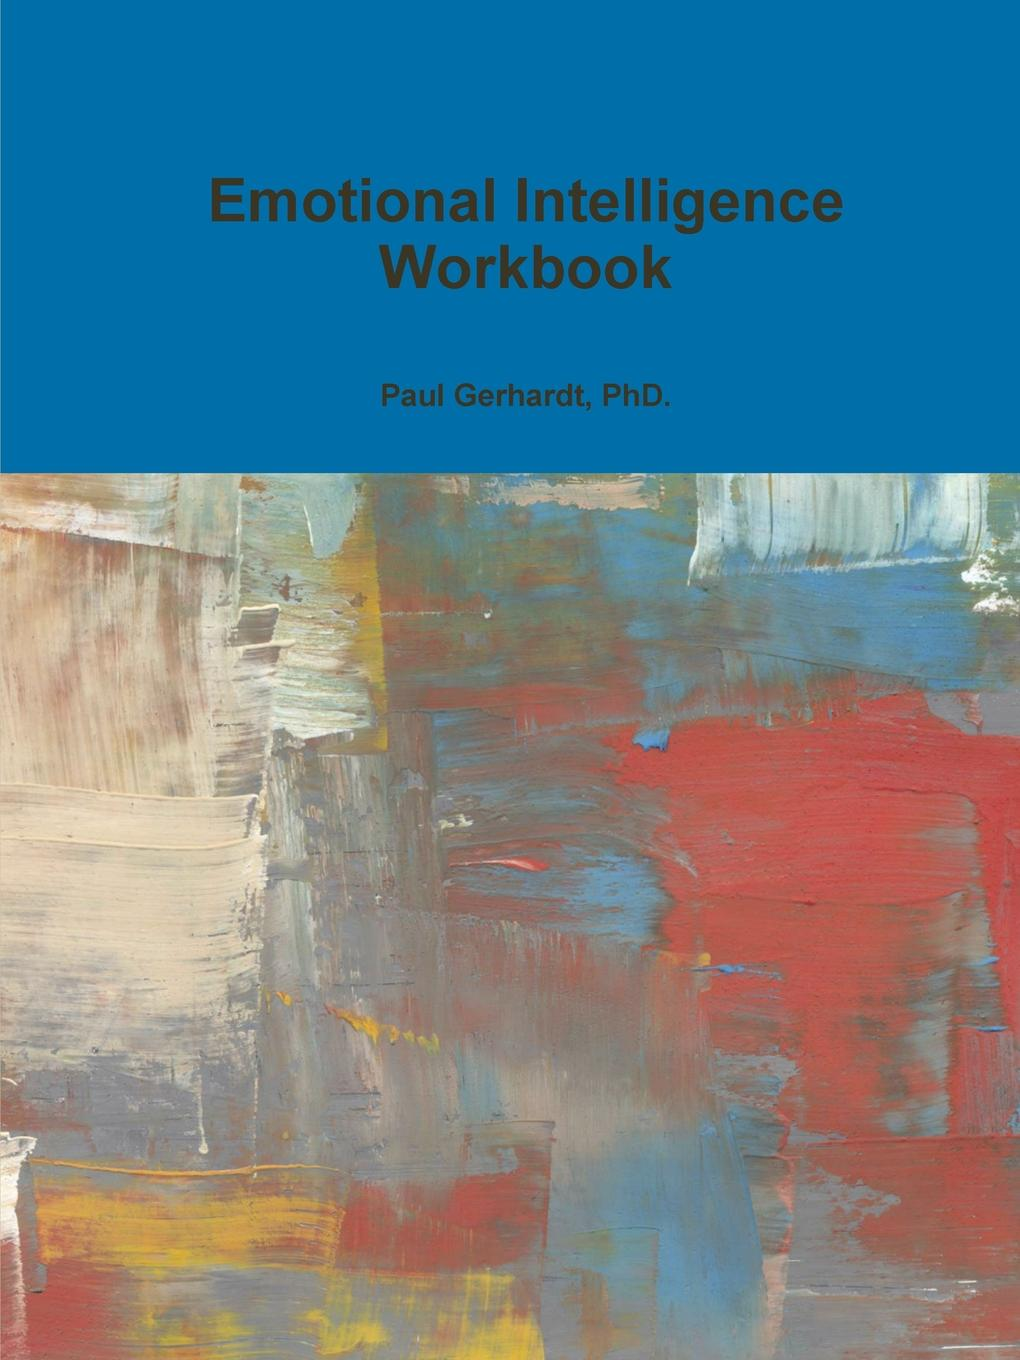 PhD. Paul Gerhardt Emotional Intelligence Workbook relating emotional intelligence compensation and motivation with employees performance